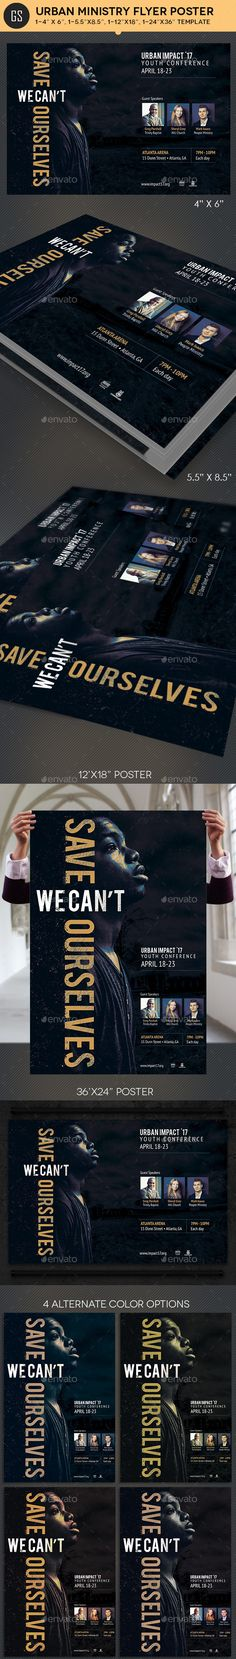 Poor Church Flyer Poster Template Print templates - christian flyer templates